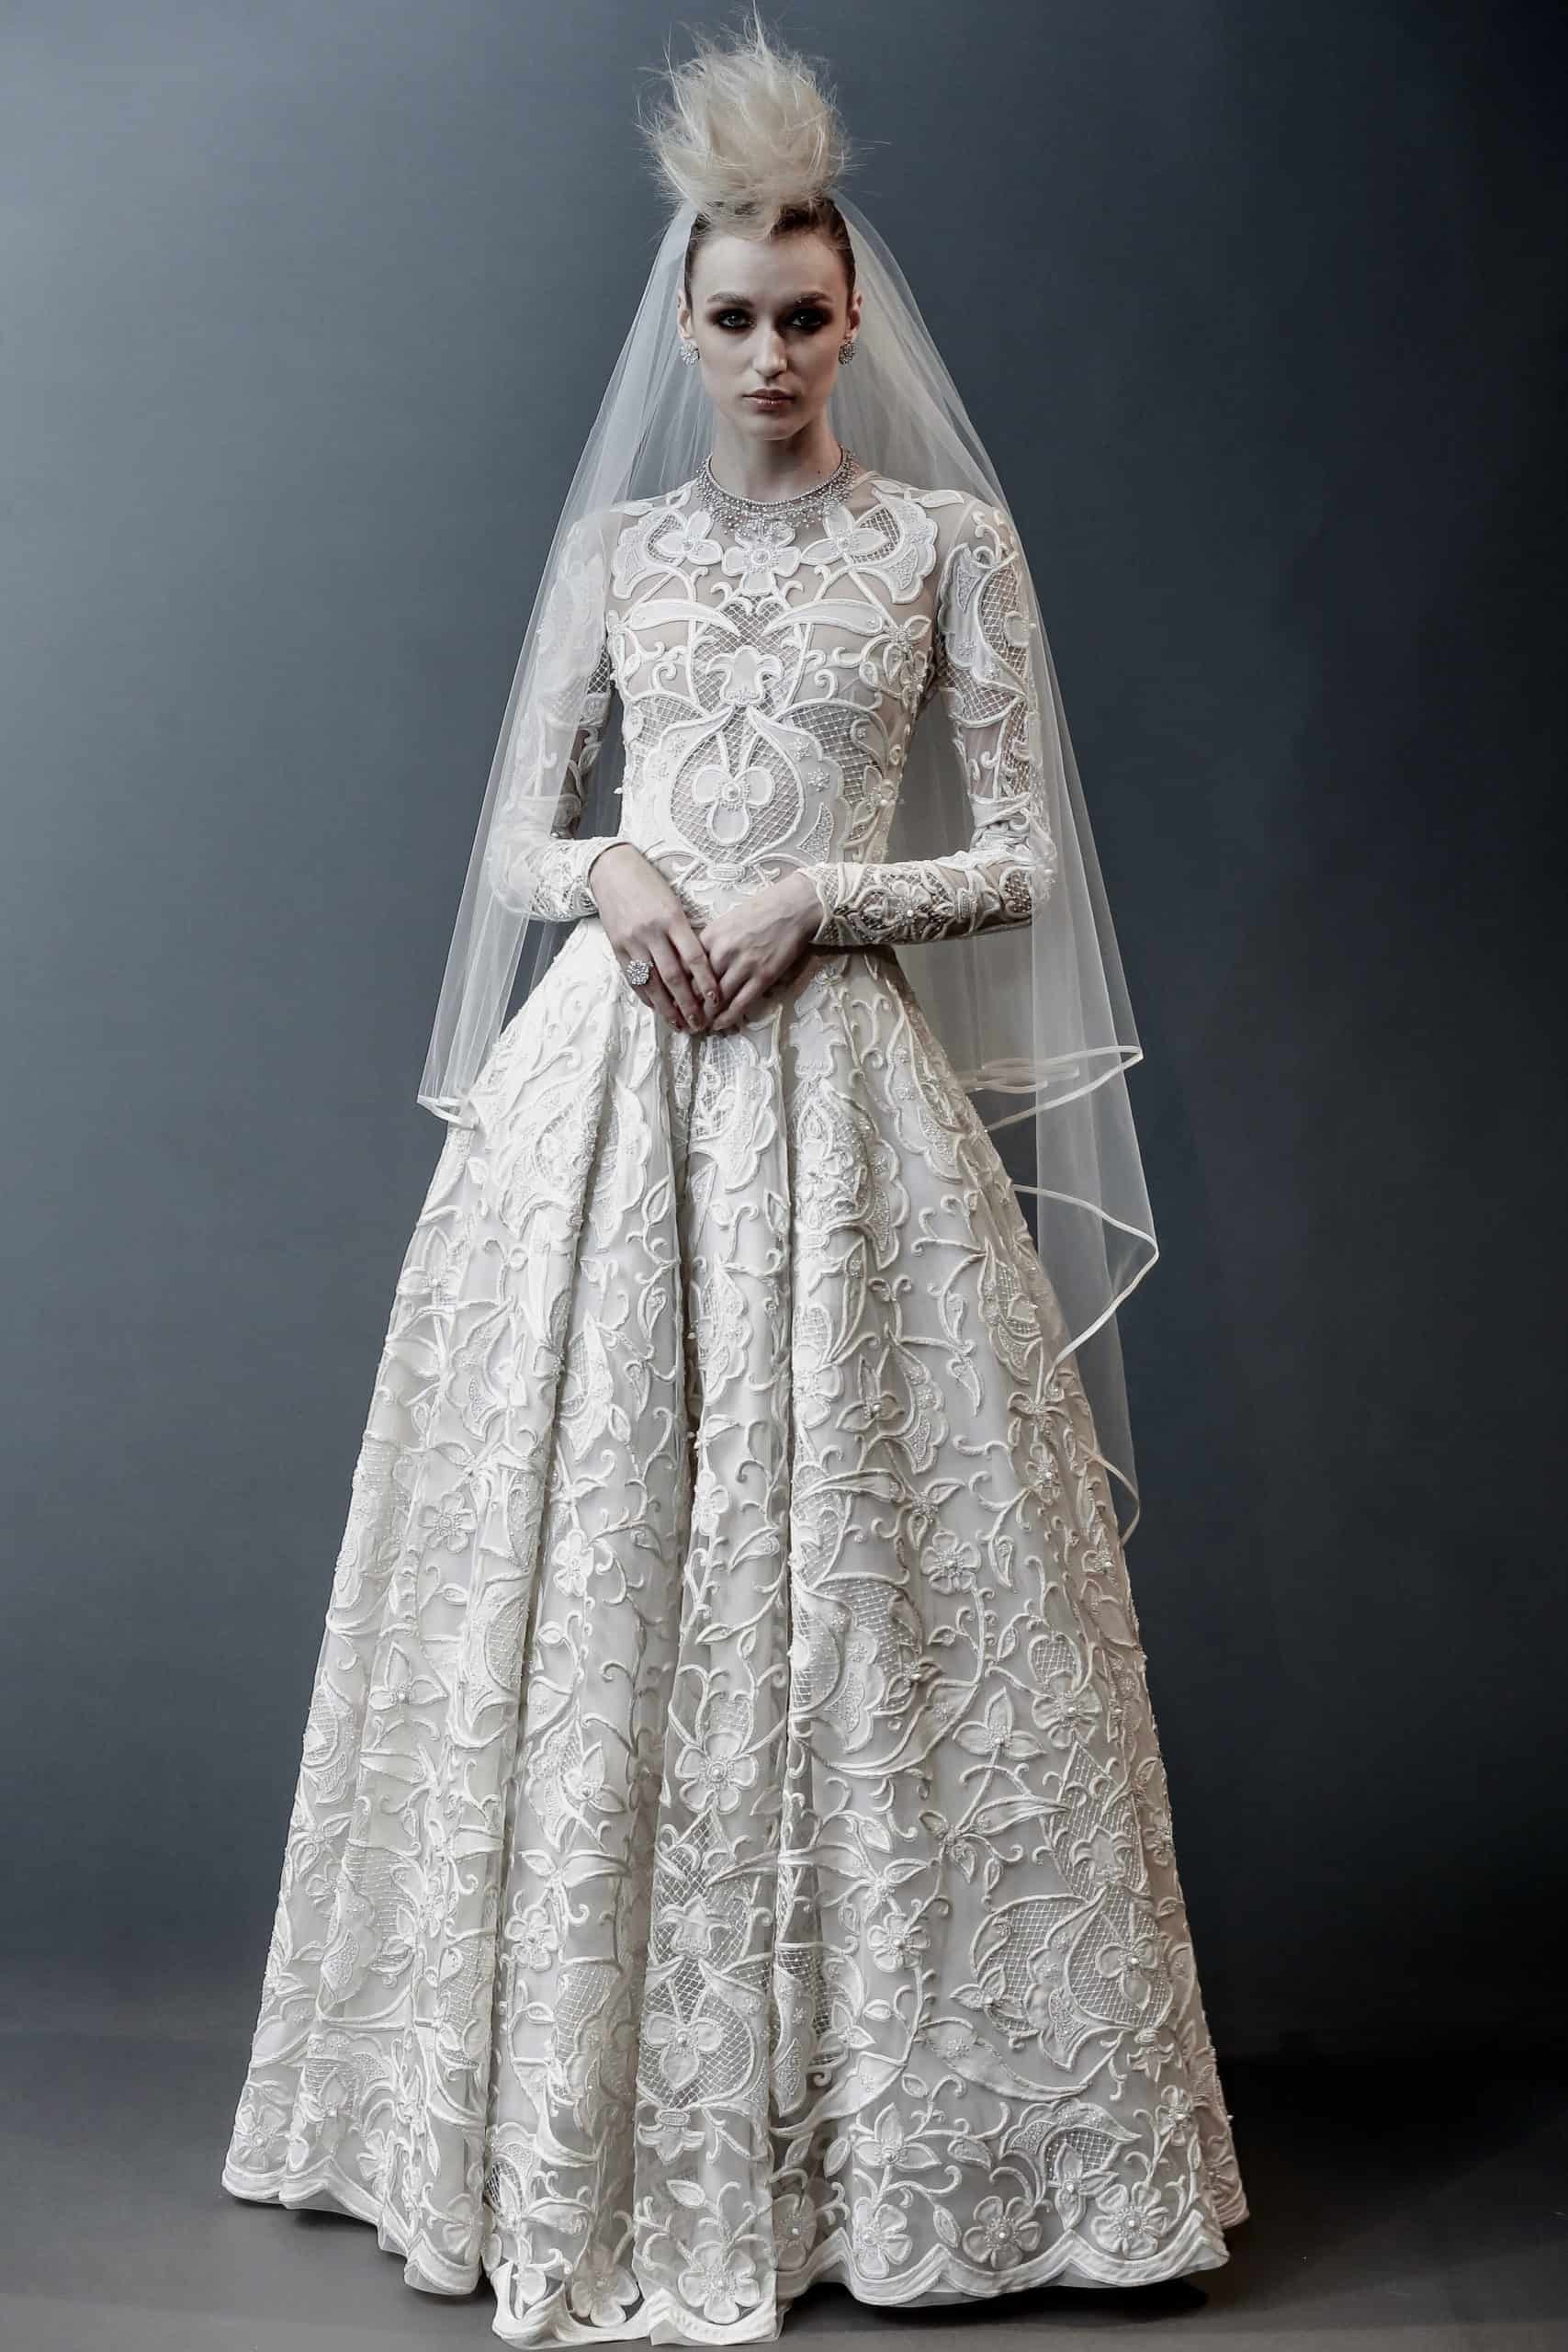 a royal princess wedding dress with embossed heavy lace by Naeem Khan